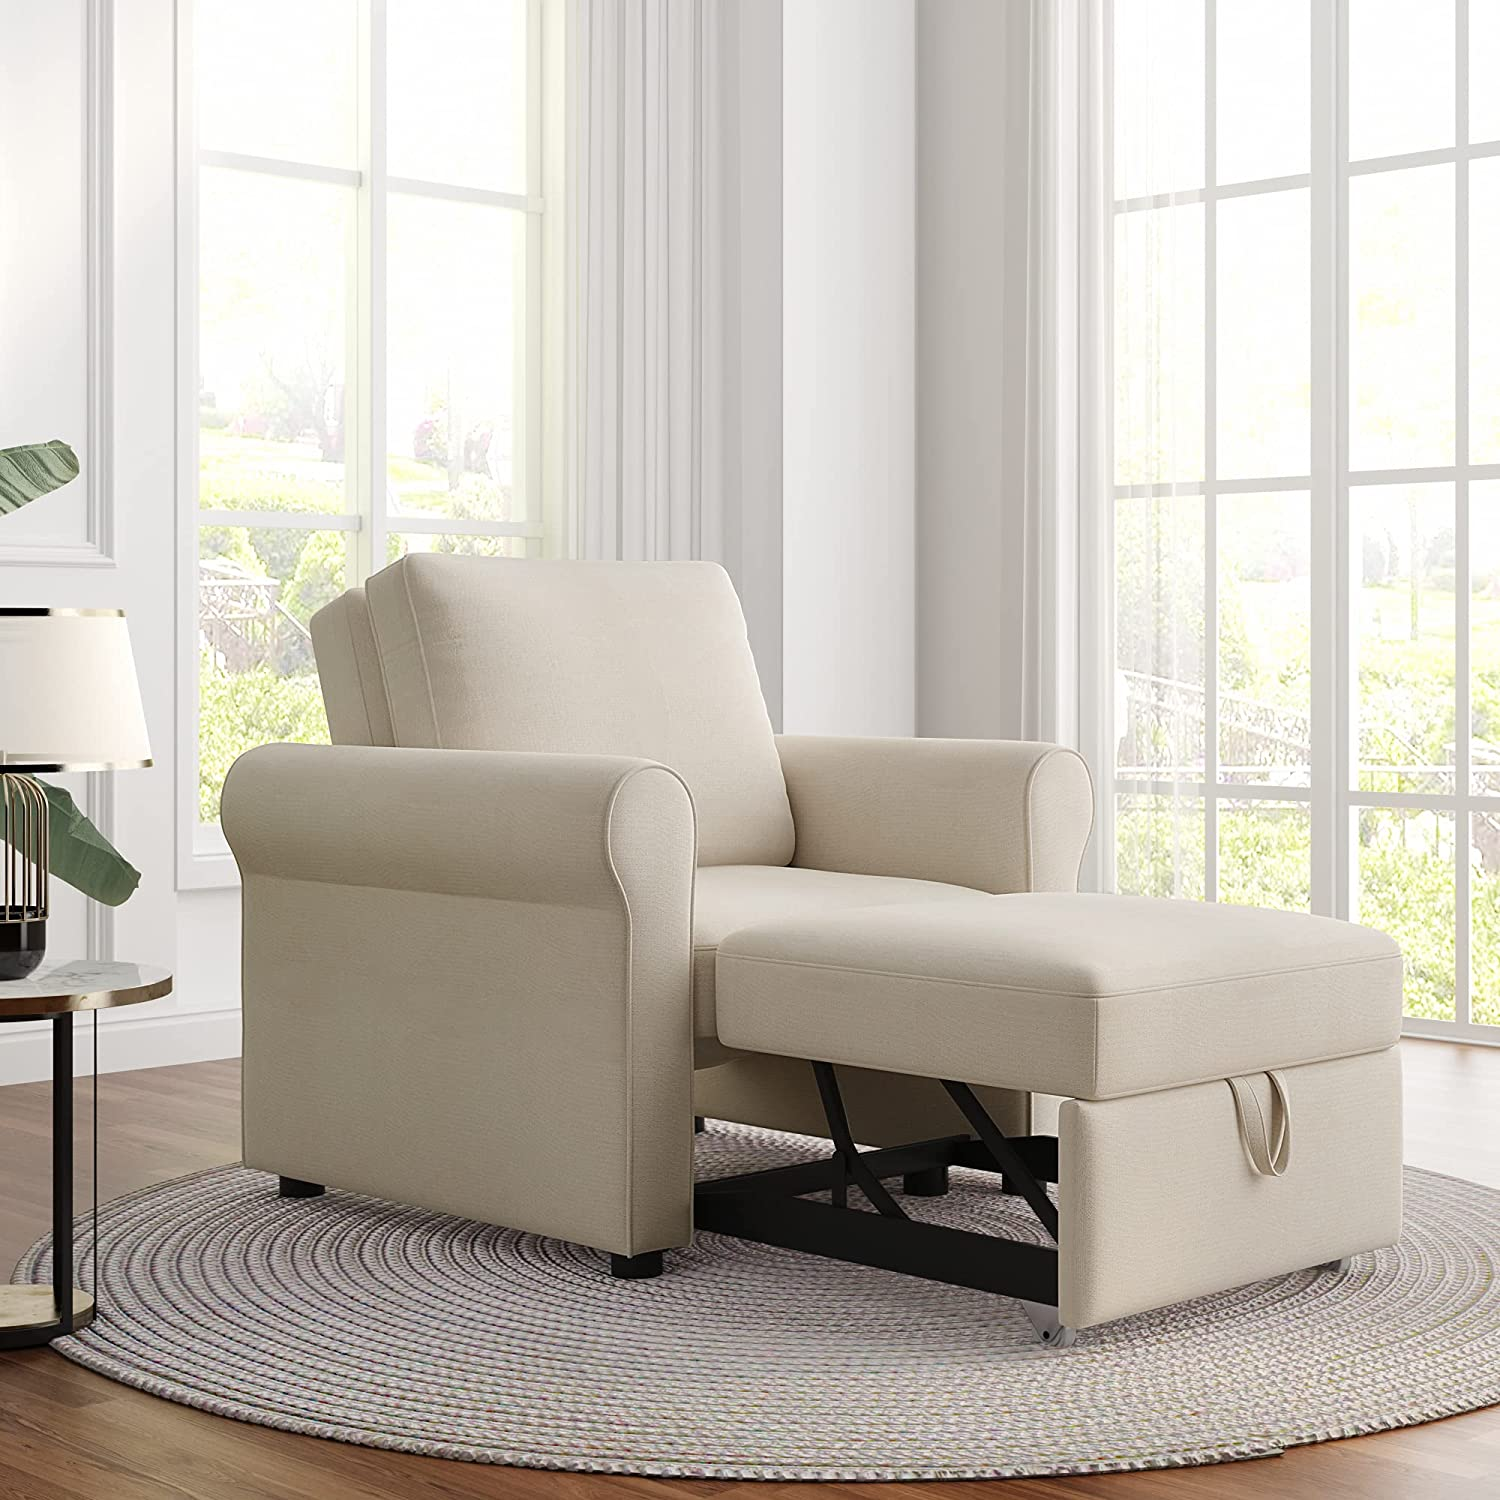 3-in-1 Sofa All stores are sold Bed Chair Popularity Merax Adju Convertible Sleeper